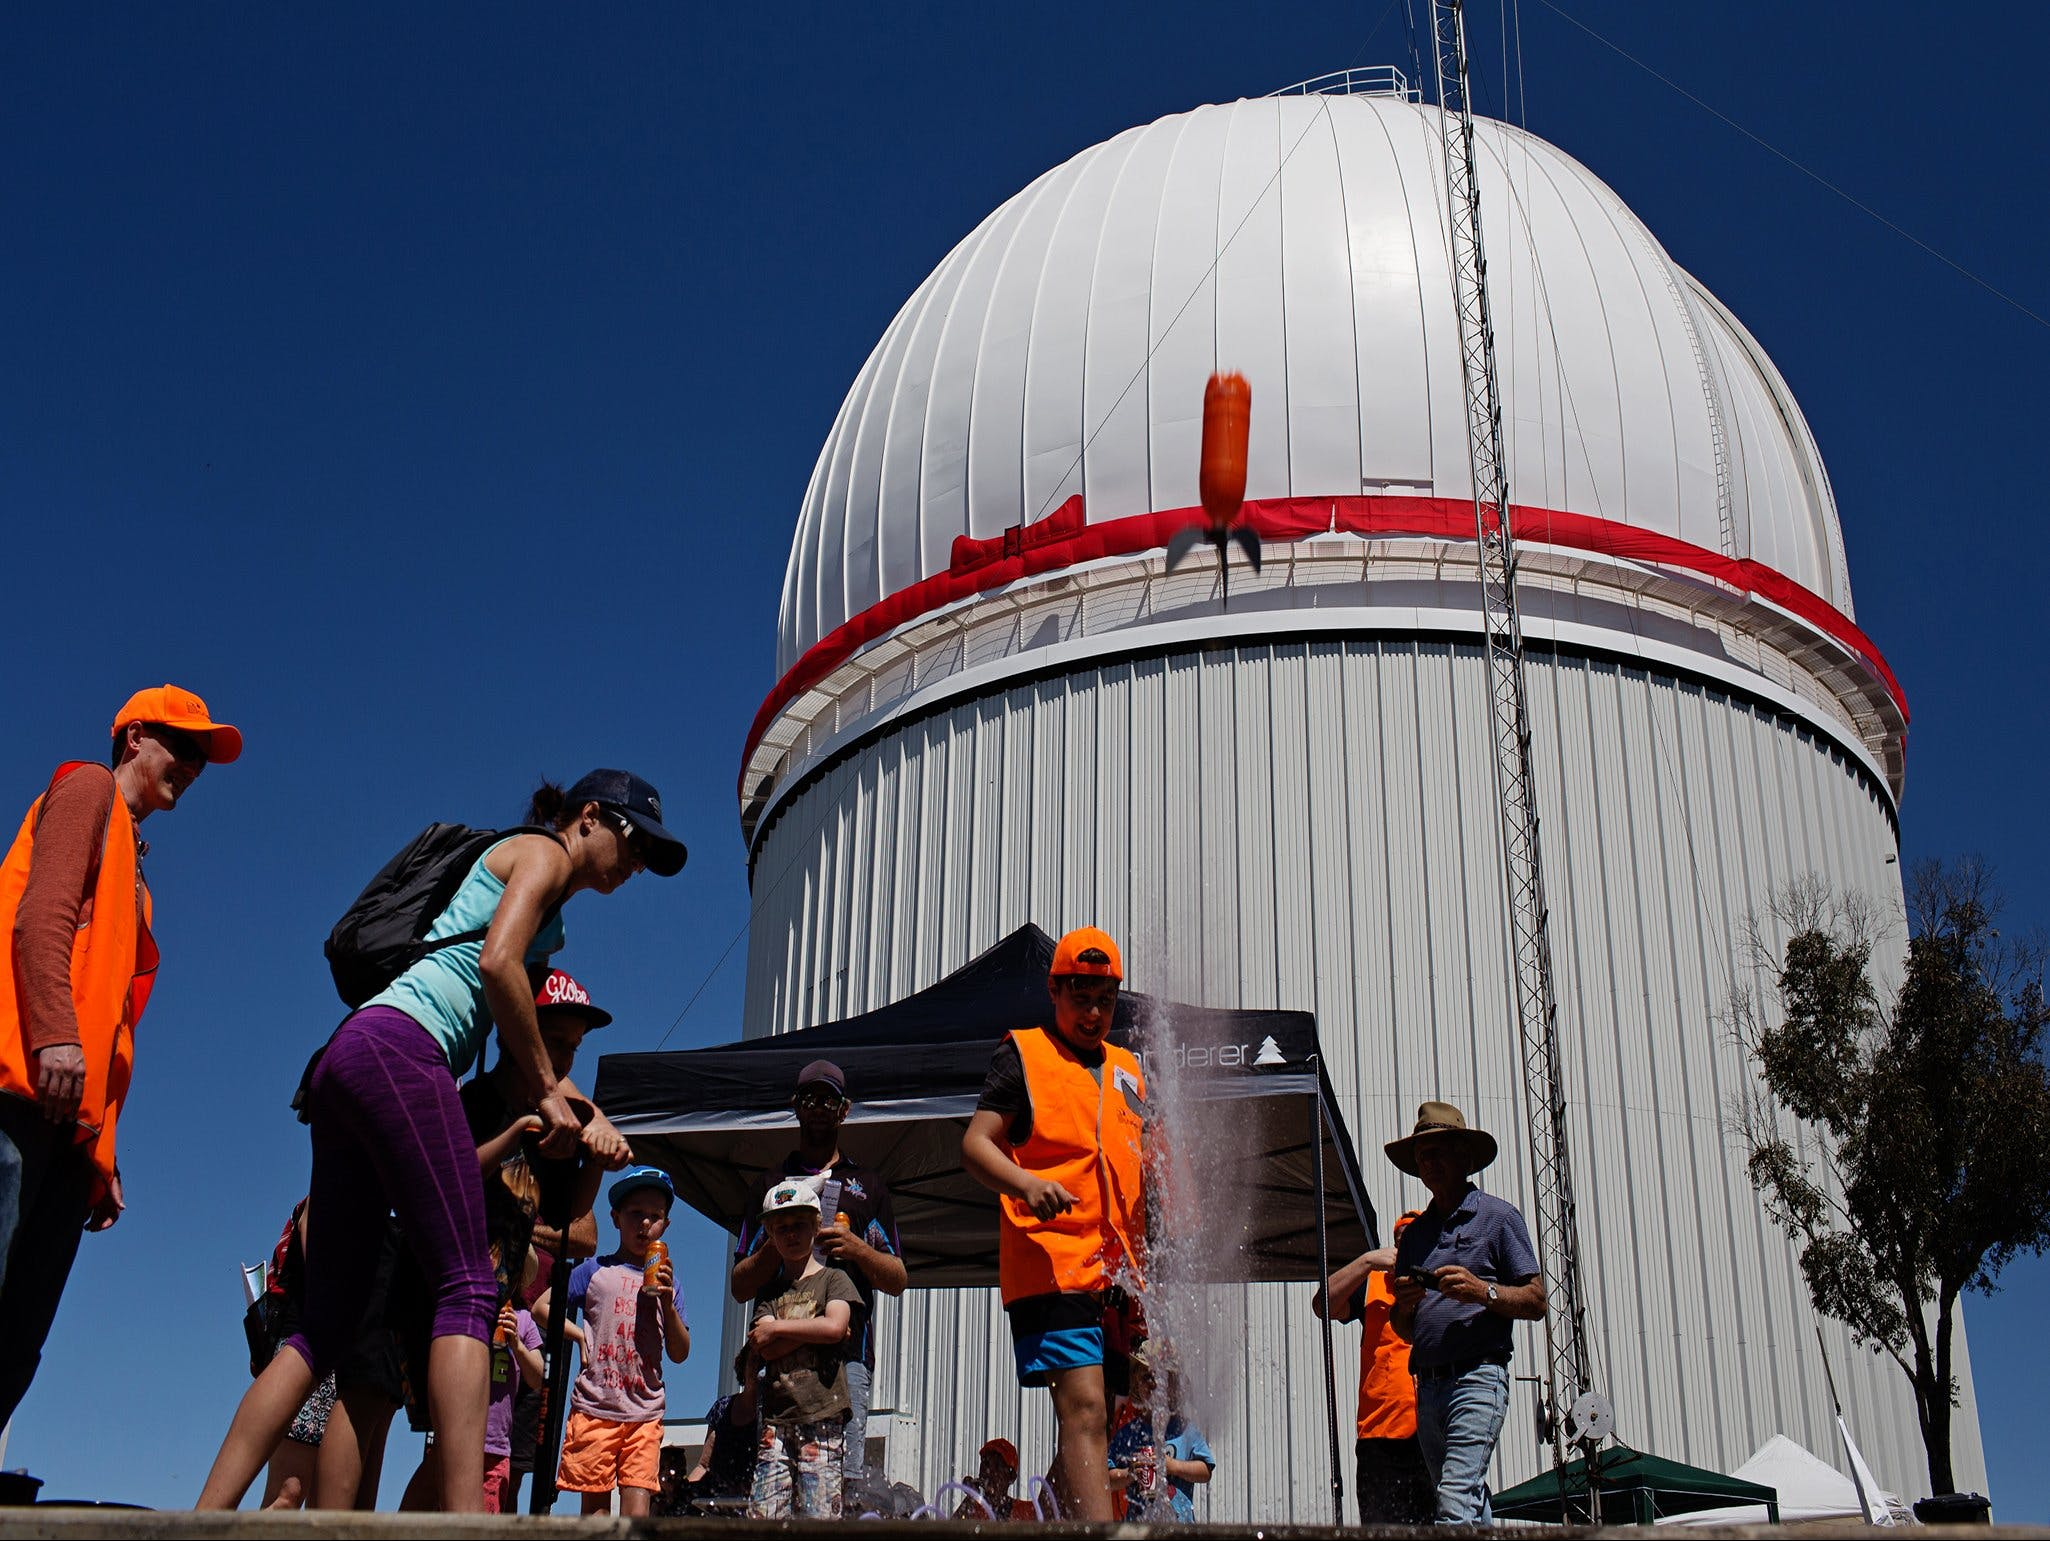 Siding Spring Observatory Open Day - Cancelled due to COVID 19 - Accommodation Kalgoorlie